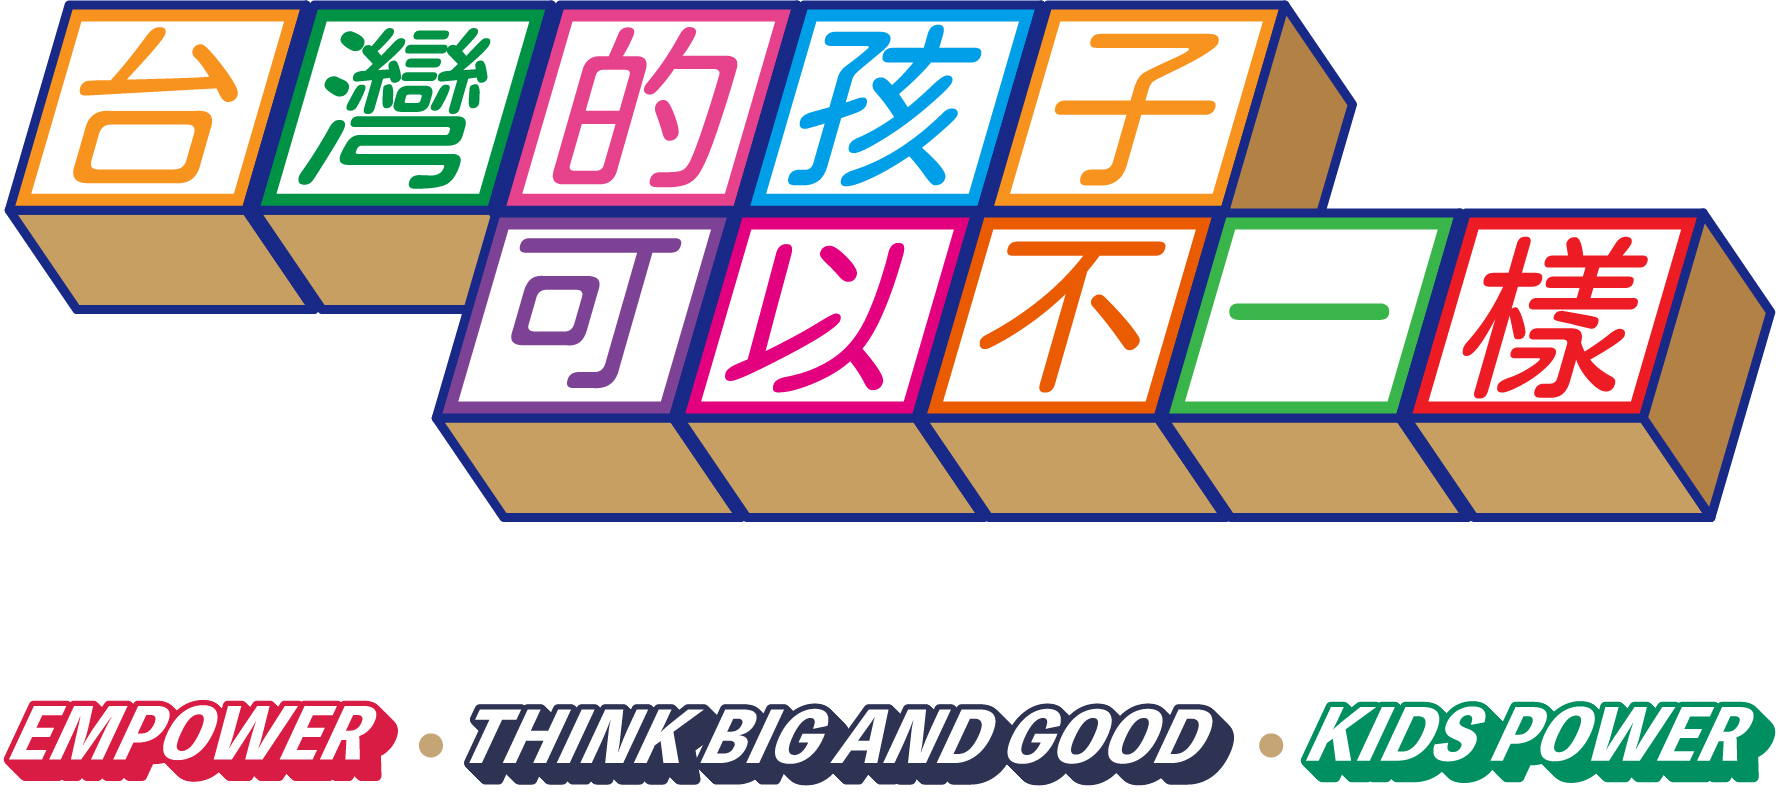 Banner - Empower, Think Big and Good, Kids Power